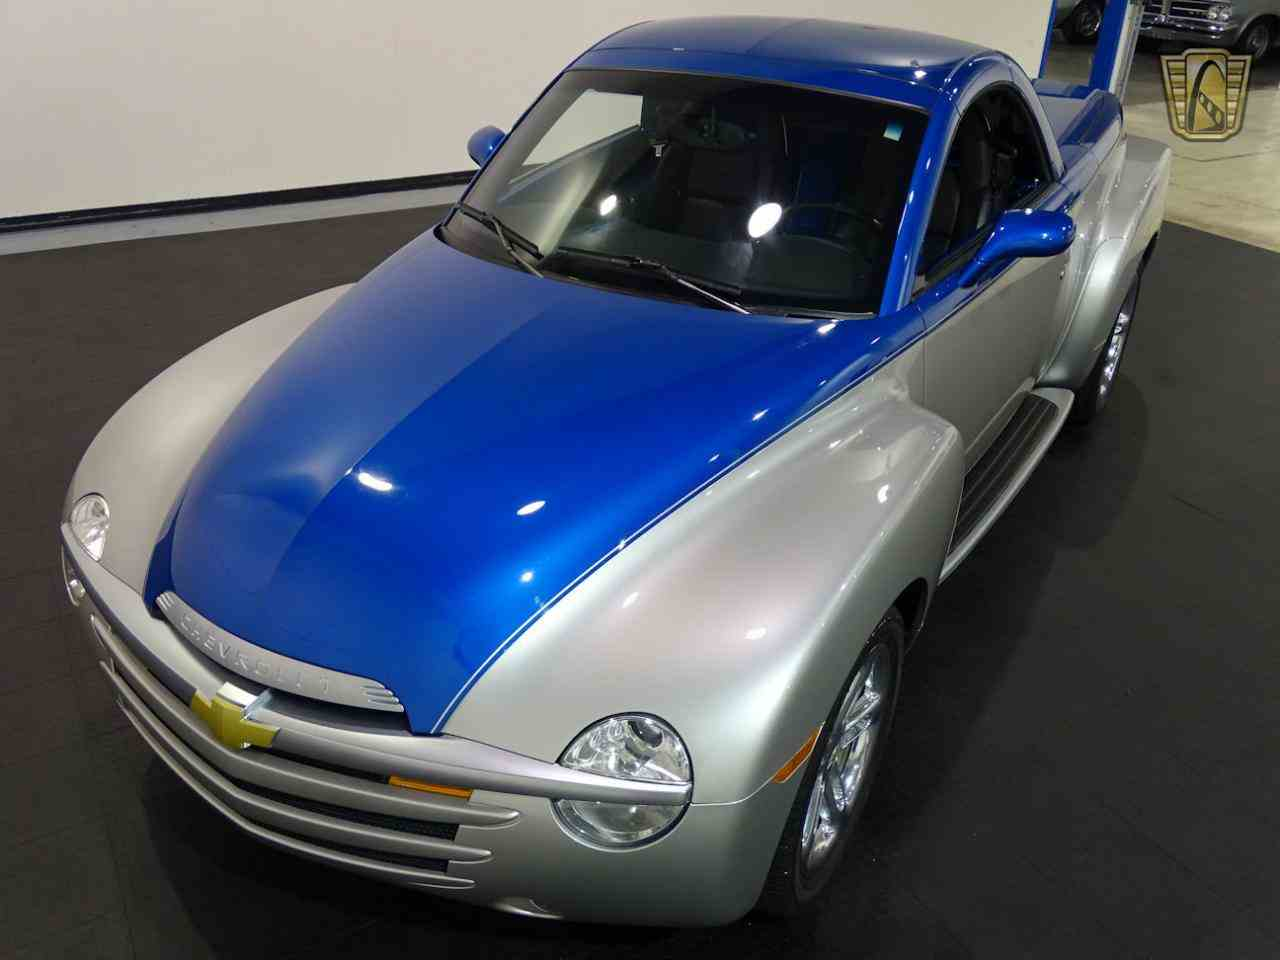 All Chevy 2006 chevrolet ssr for sale : 2006 Chevrolet SSR for Sale | ClassicCars.com | CC-1044349